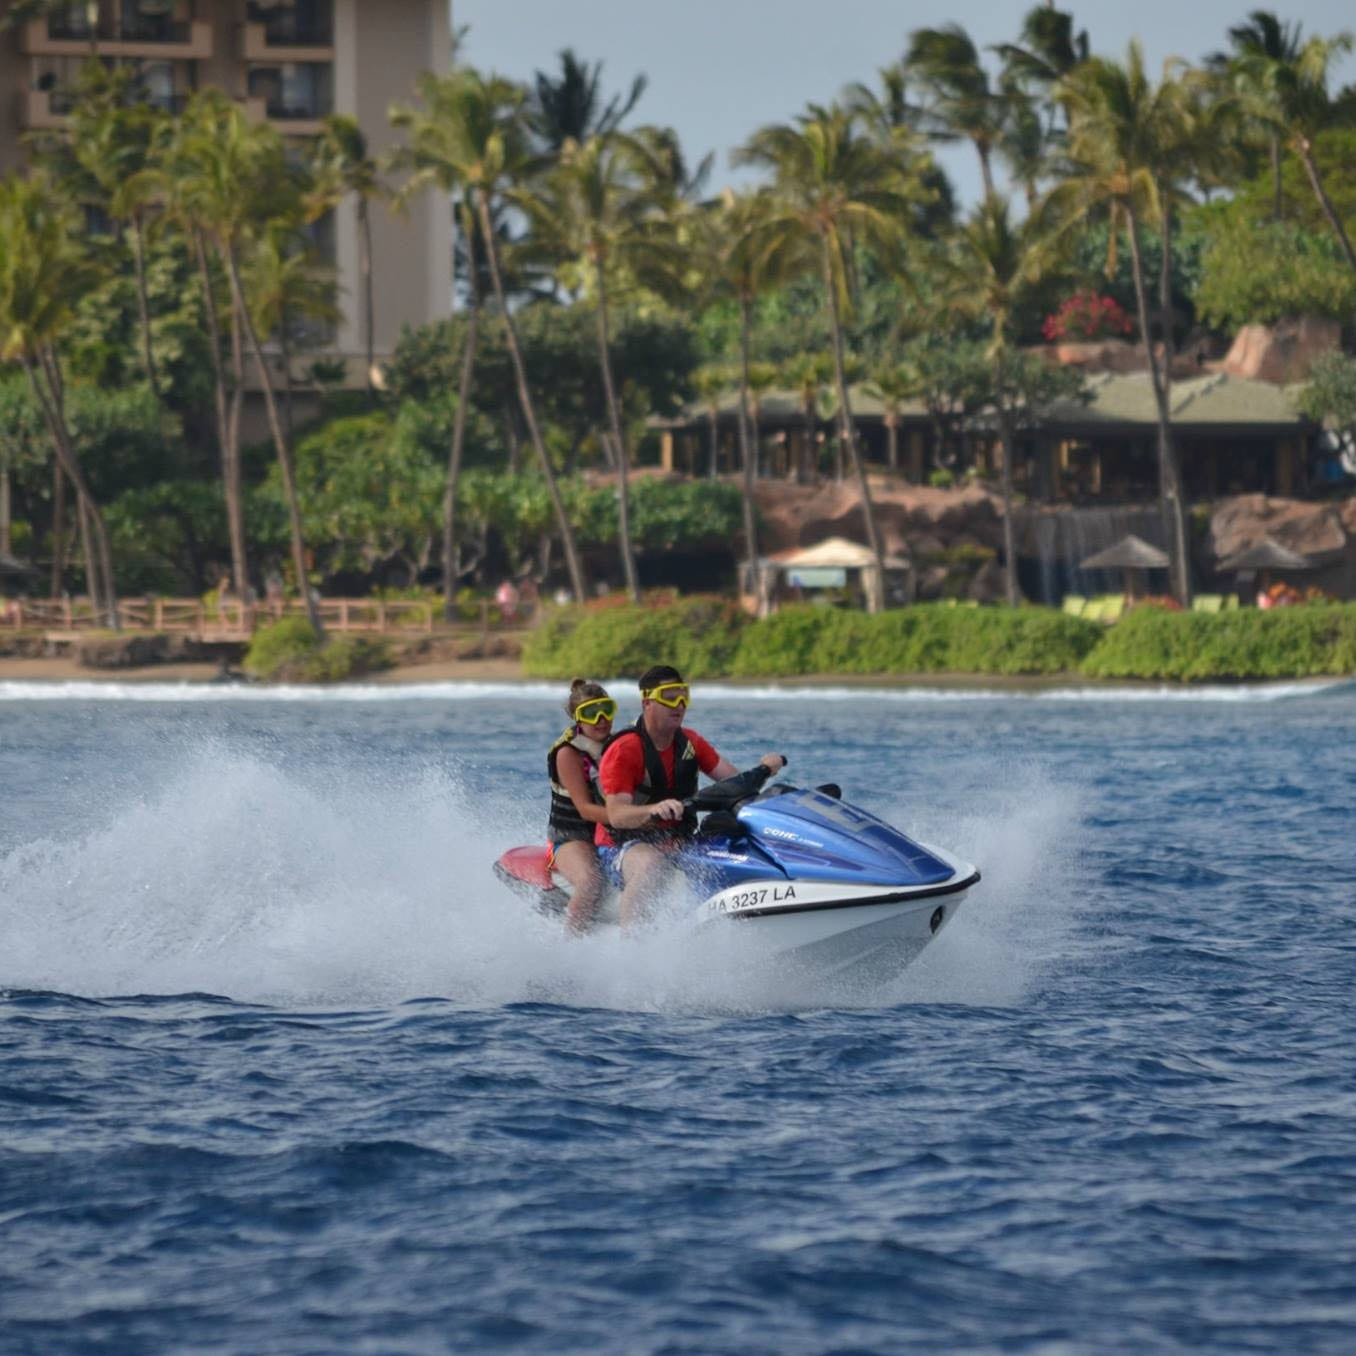 Maui Jet Ski - Maui Activities at the Best Prices - Maui Tickets for Less